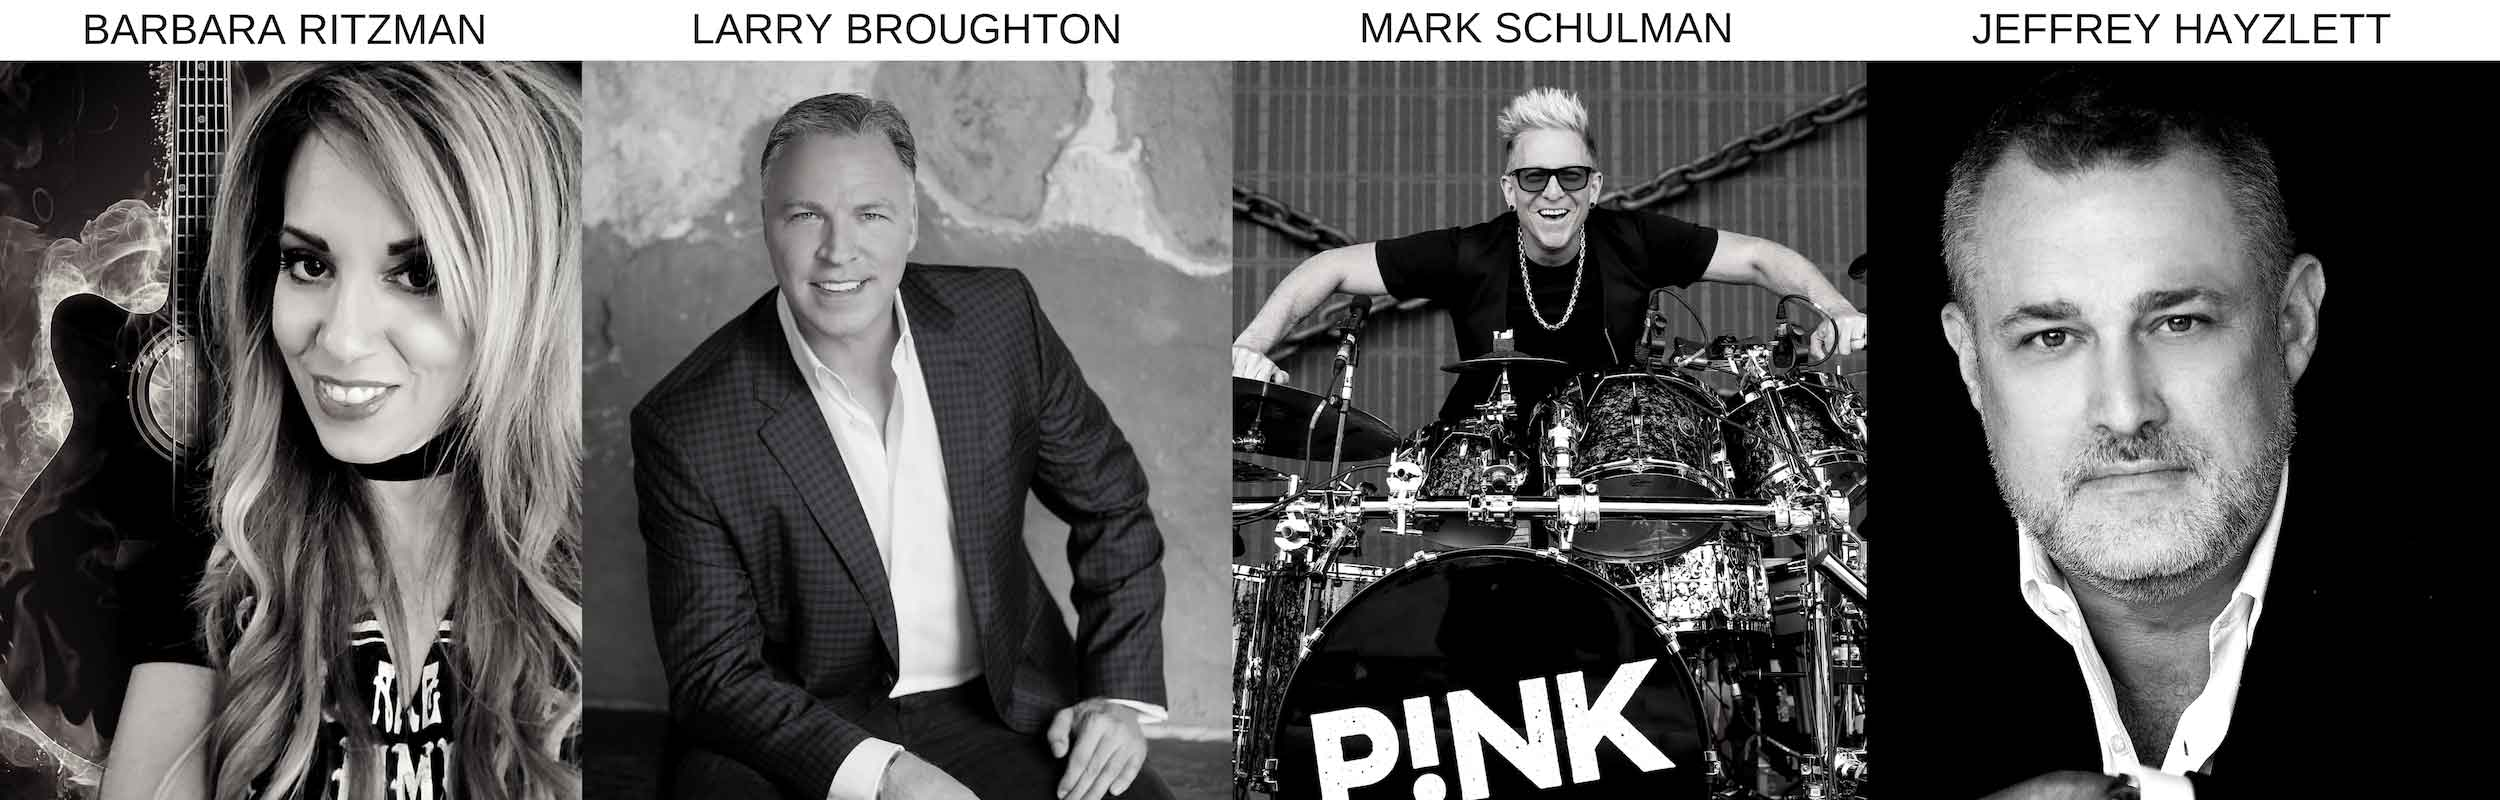 Barbie Ritzman top beauty blogger featured with, with Drummer of P!NK, Mark Schulman, Larry Broughton and Jeffrey Hayzlett